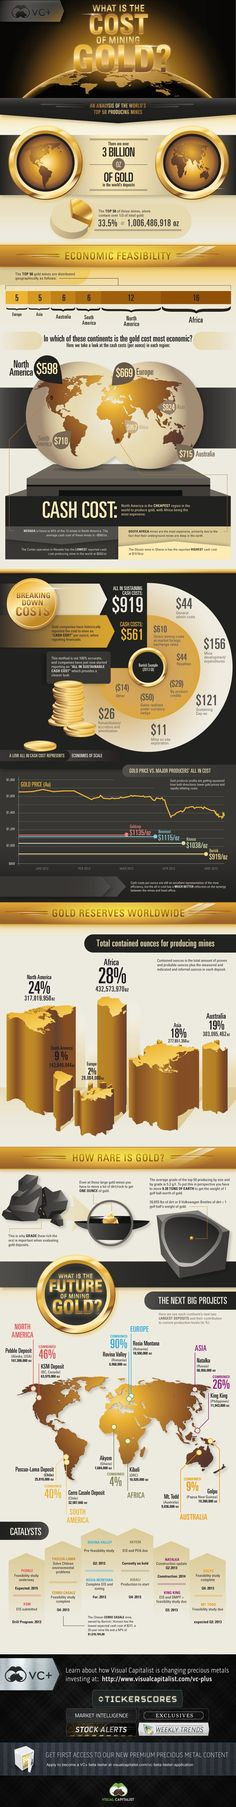 What Is Cost Of Mining Gold powerfulinfographic.com